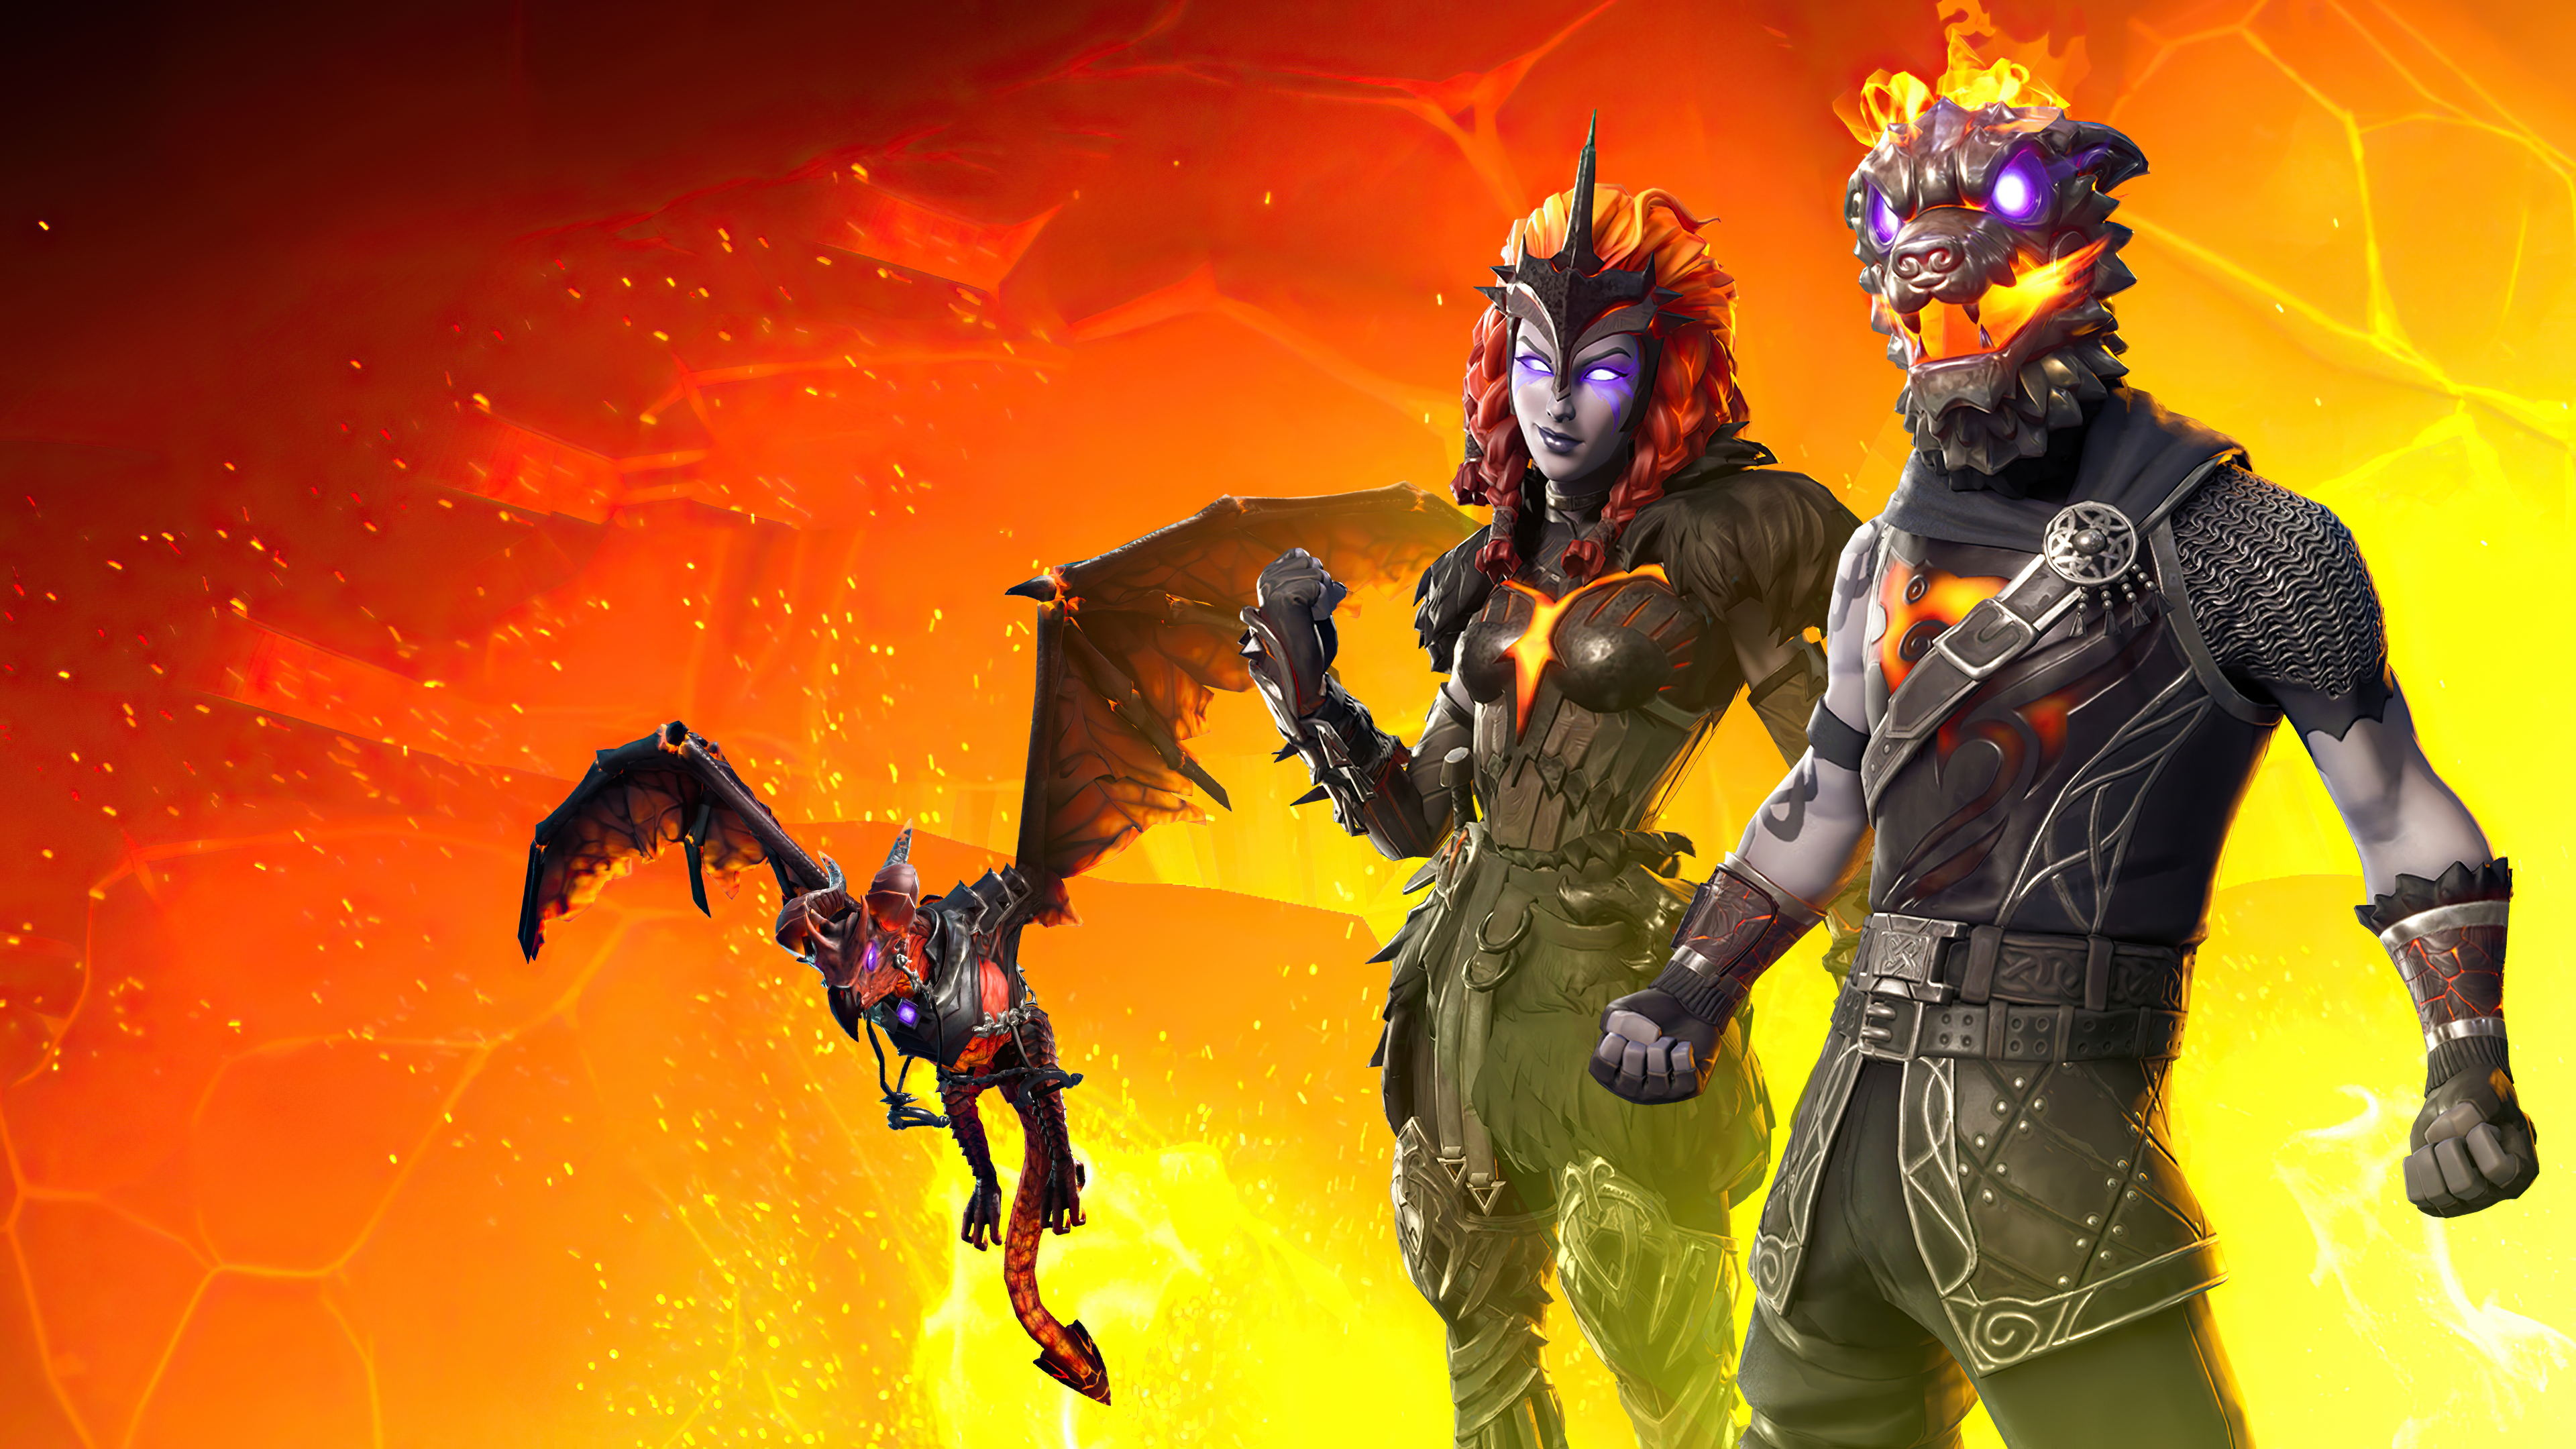 3840x2160 Fortnite New Season 2020 4k Hd 4k Wallpapers Images Backgrounds Photos And Pictures